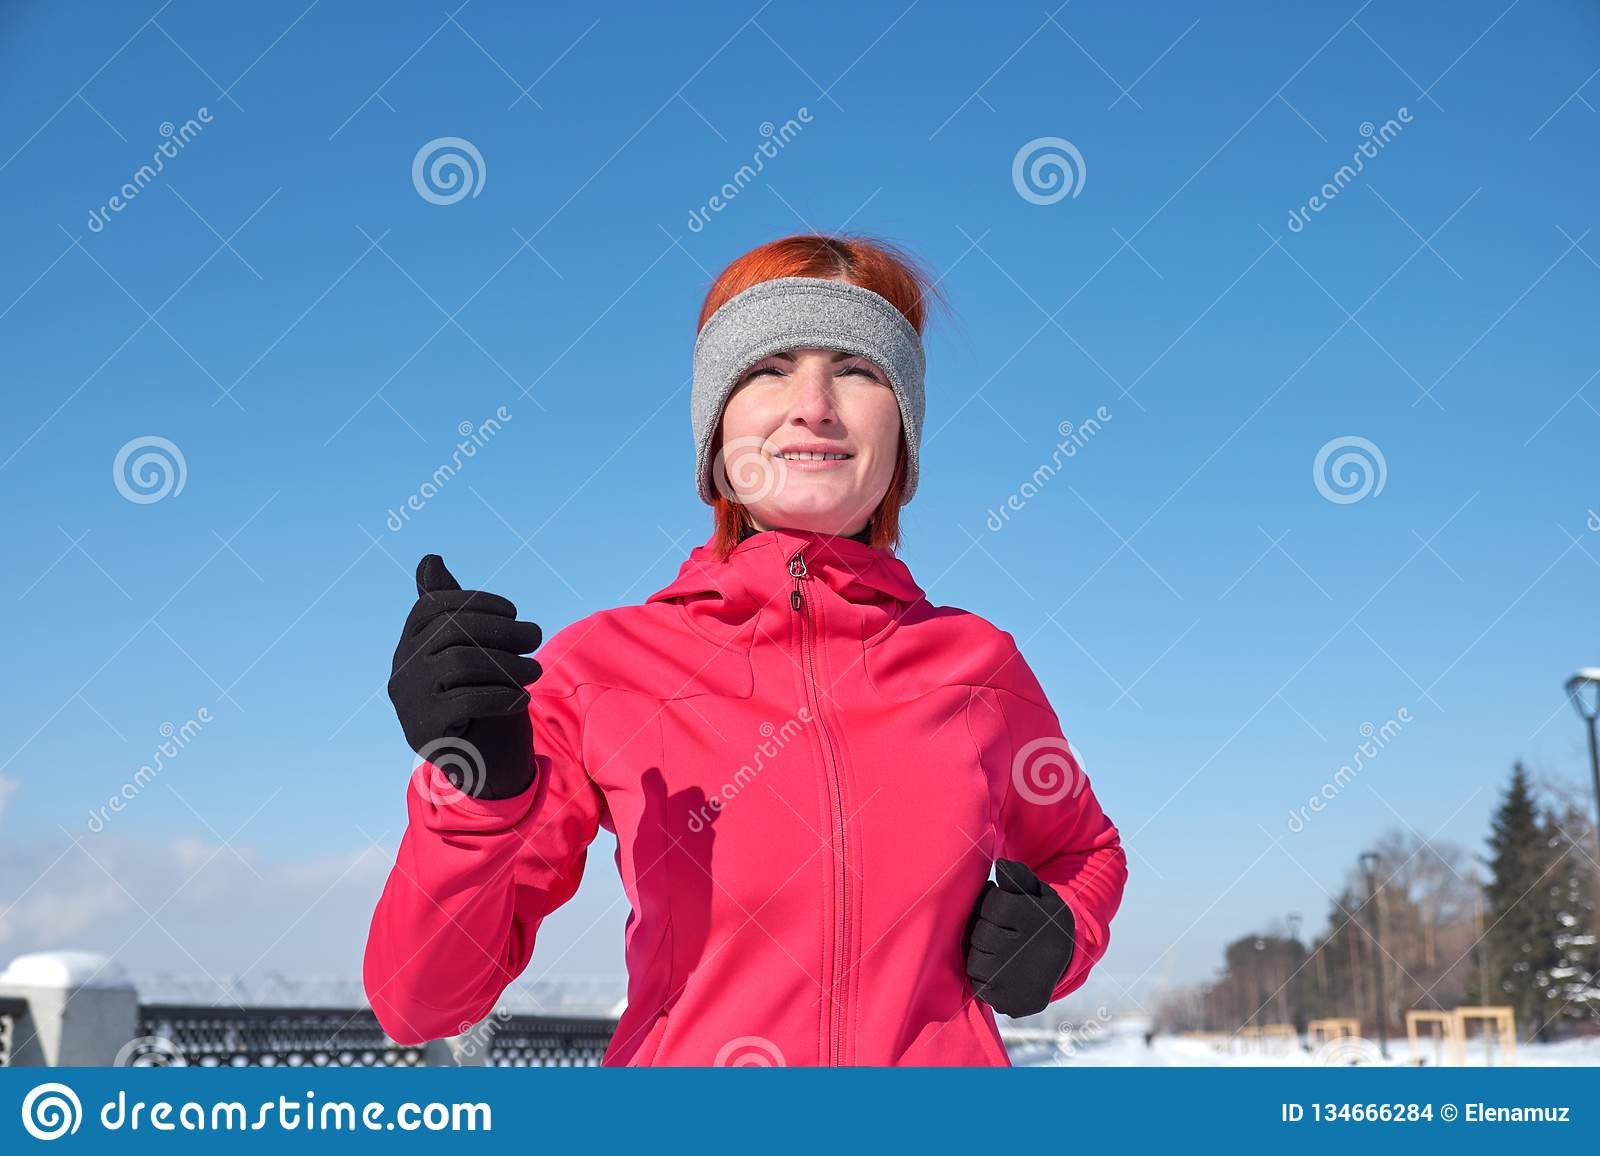 Running athlete woman sprinting during winter training outside in cold snow weather. Close up showing speed and movement